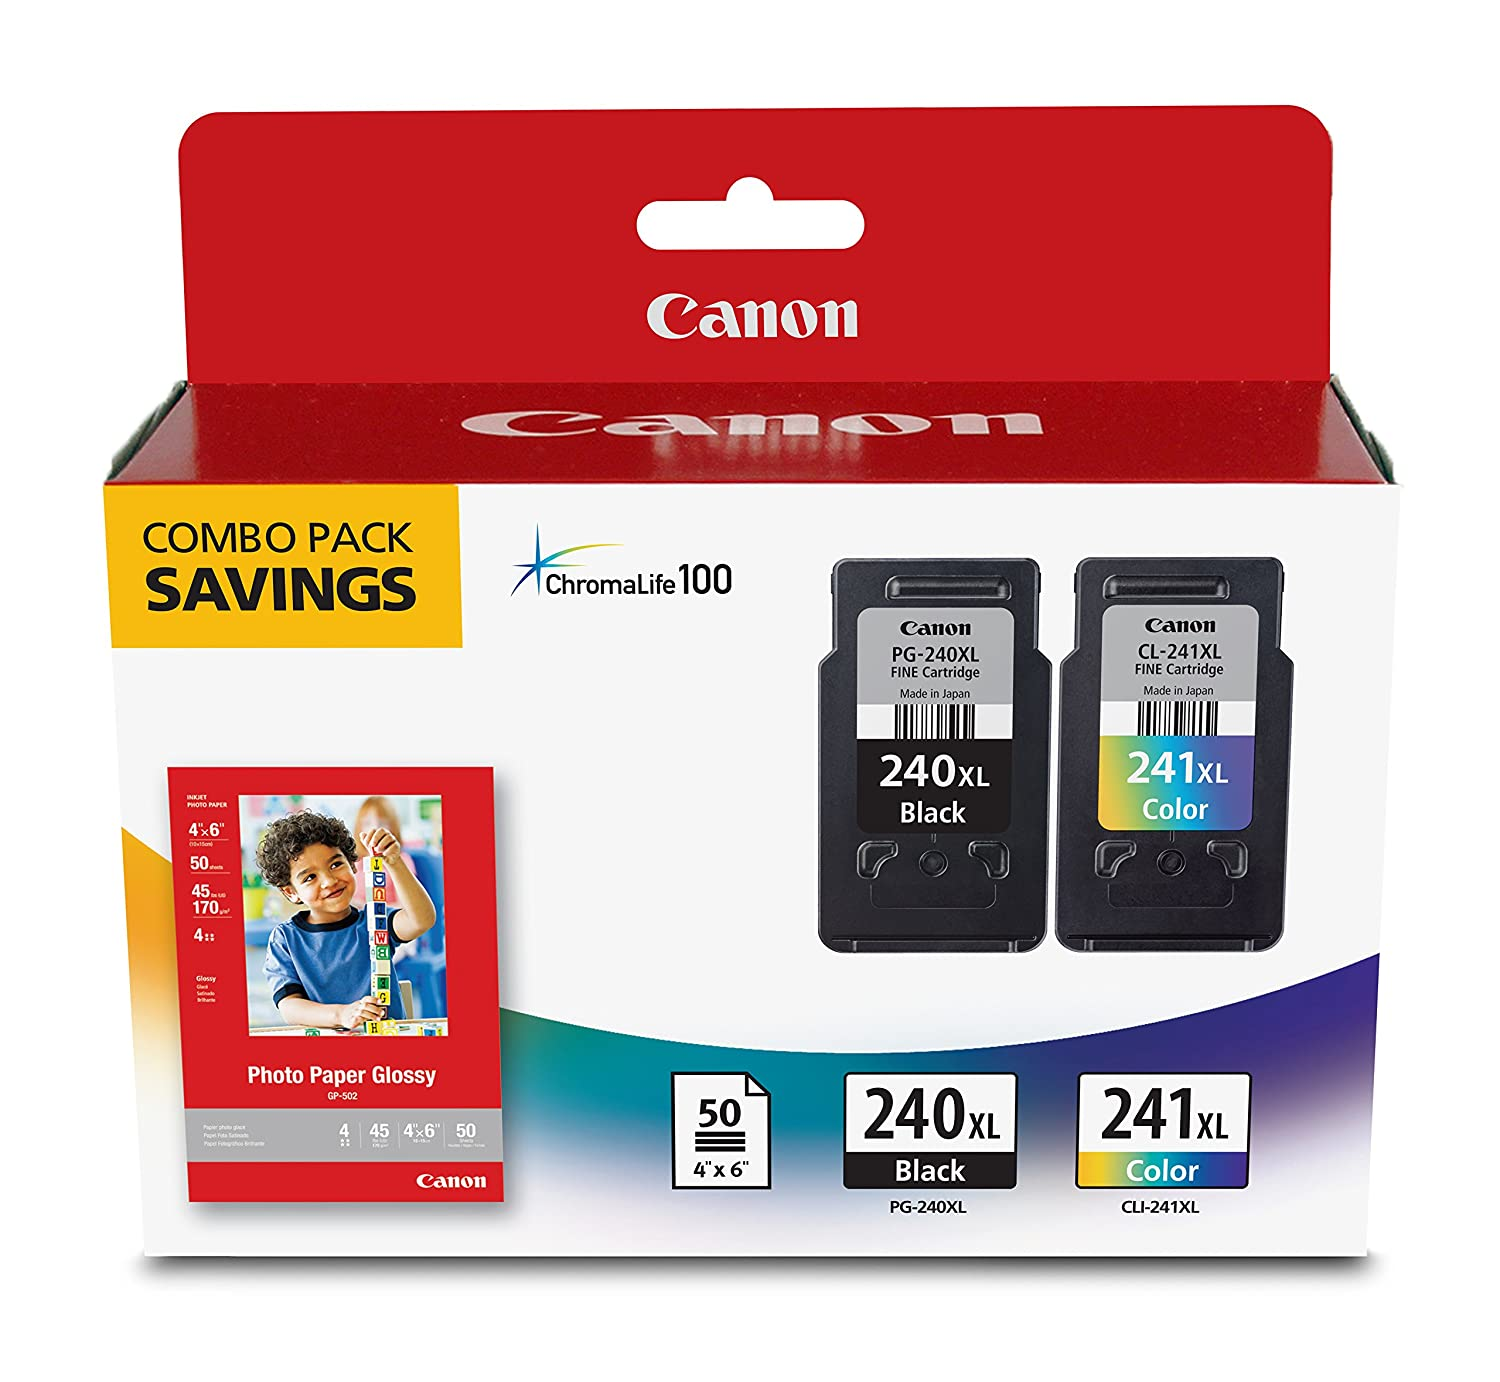 Canon Office Products PG-240XL/CL-241XL with Canon GP502 Glossy Photo Paper - Combo Pack Ink